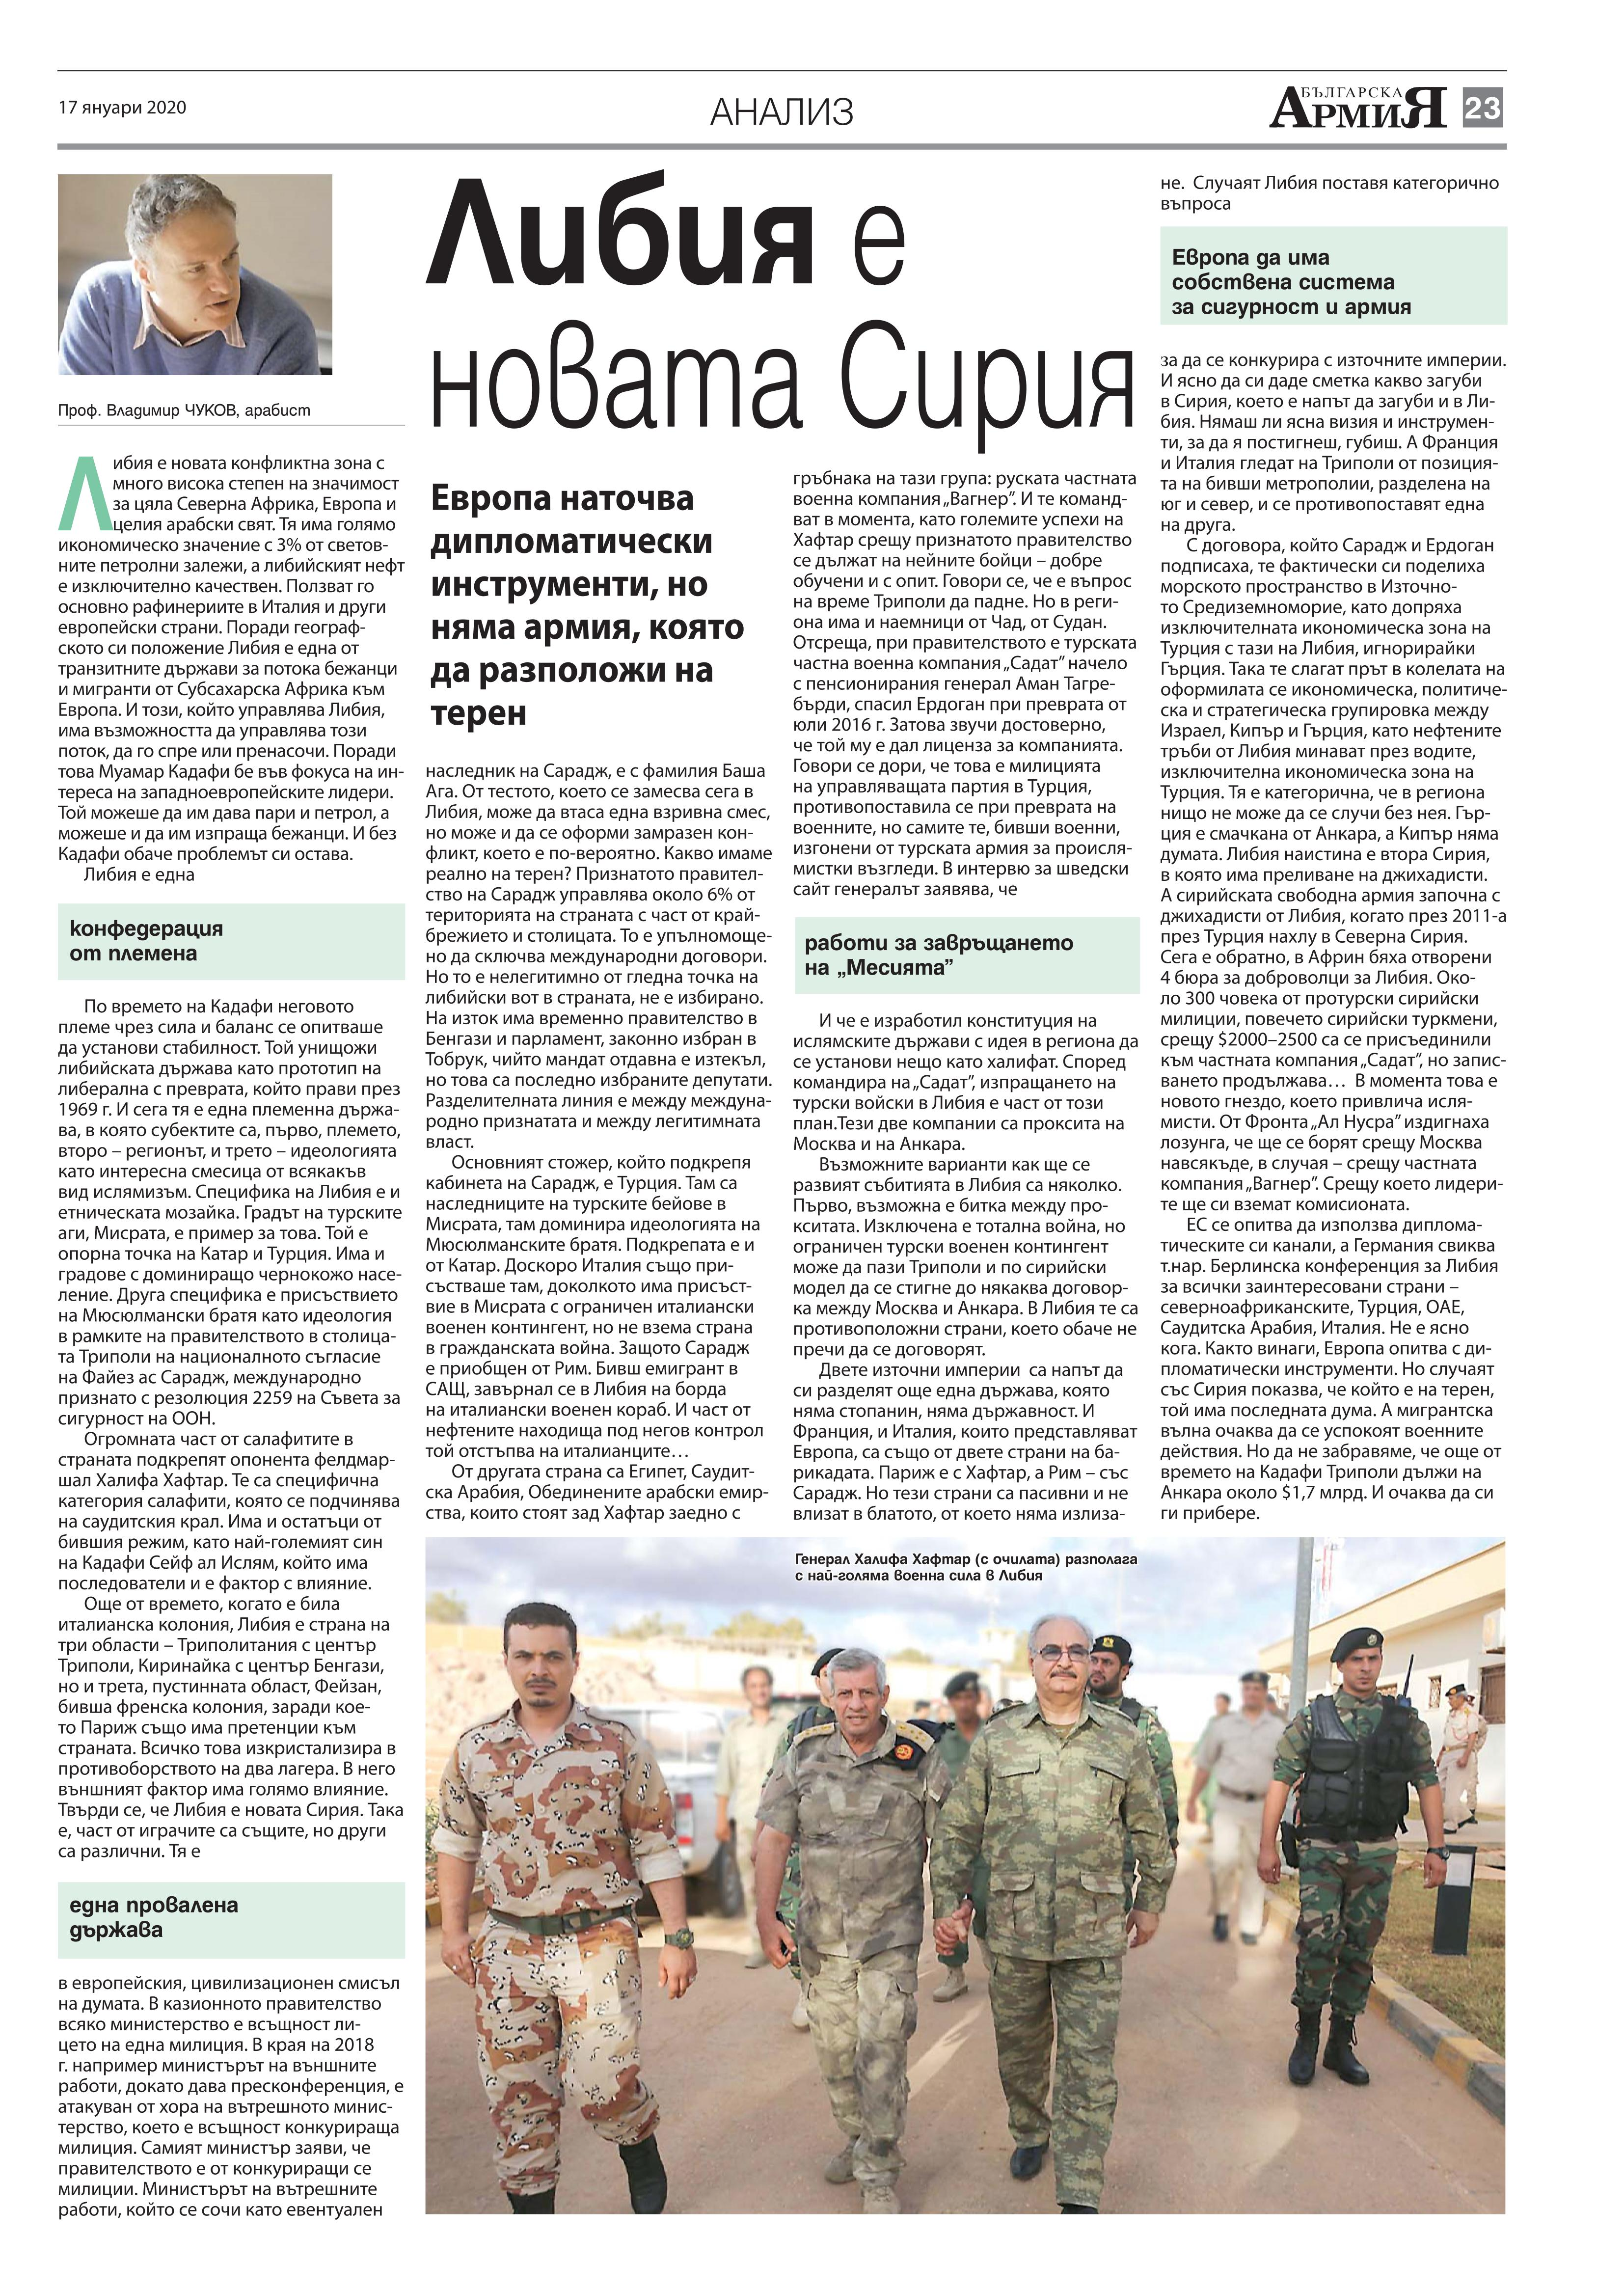 https://www.armymedia.bg/wp-content/uploads/2015/06/23.page1_-123.jpg